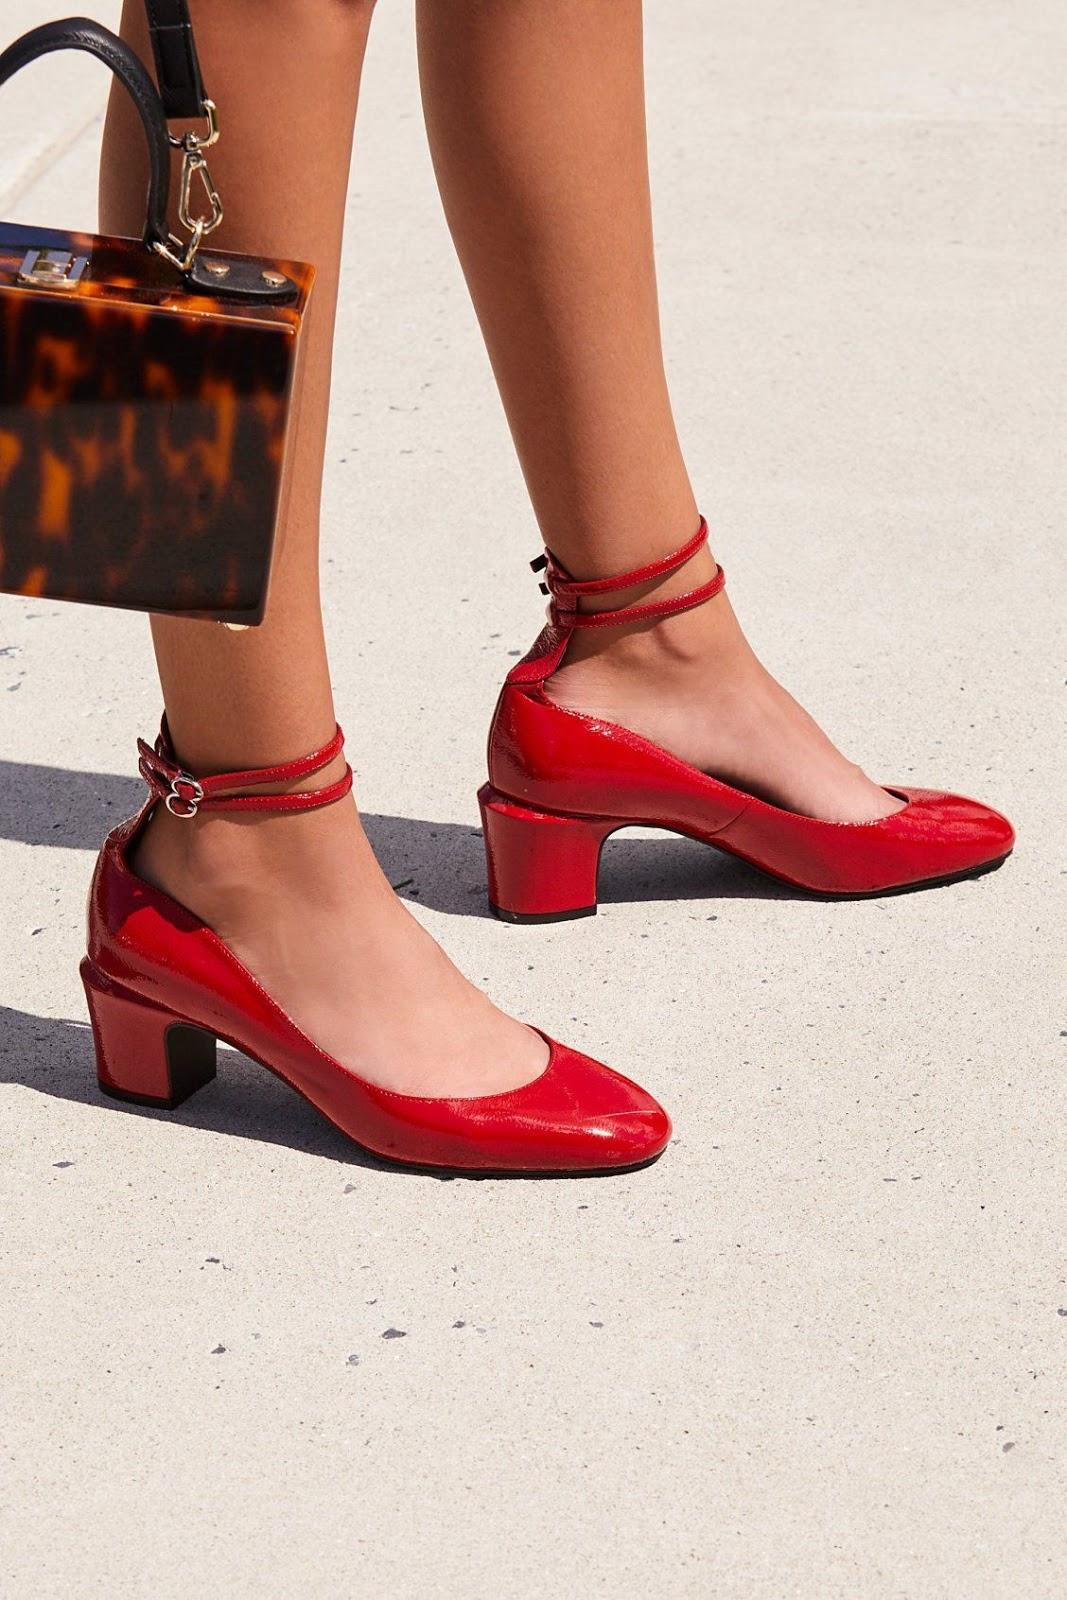 Lana Red Block Heel from The Children's Hour, Mother's Day gift guide